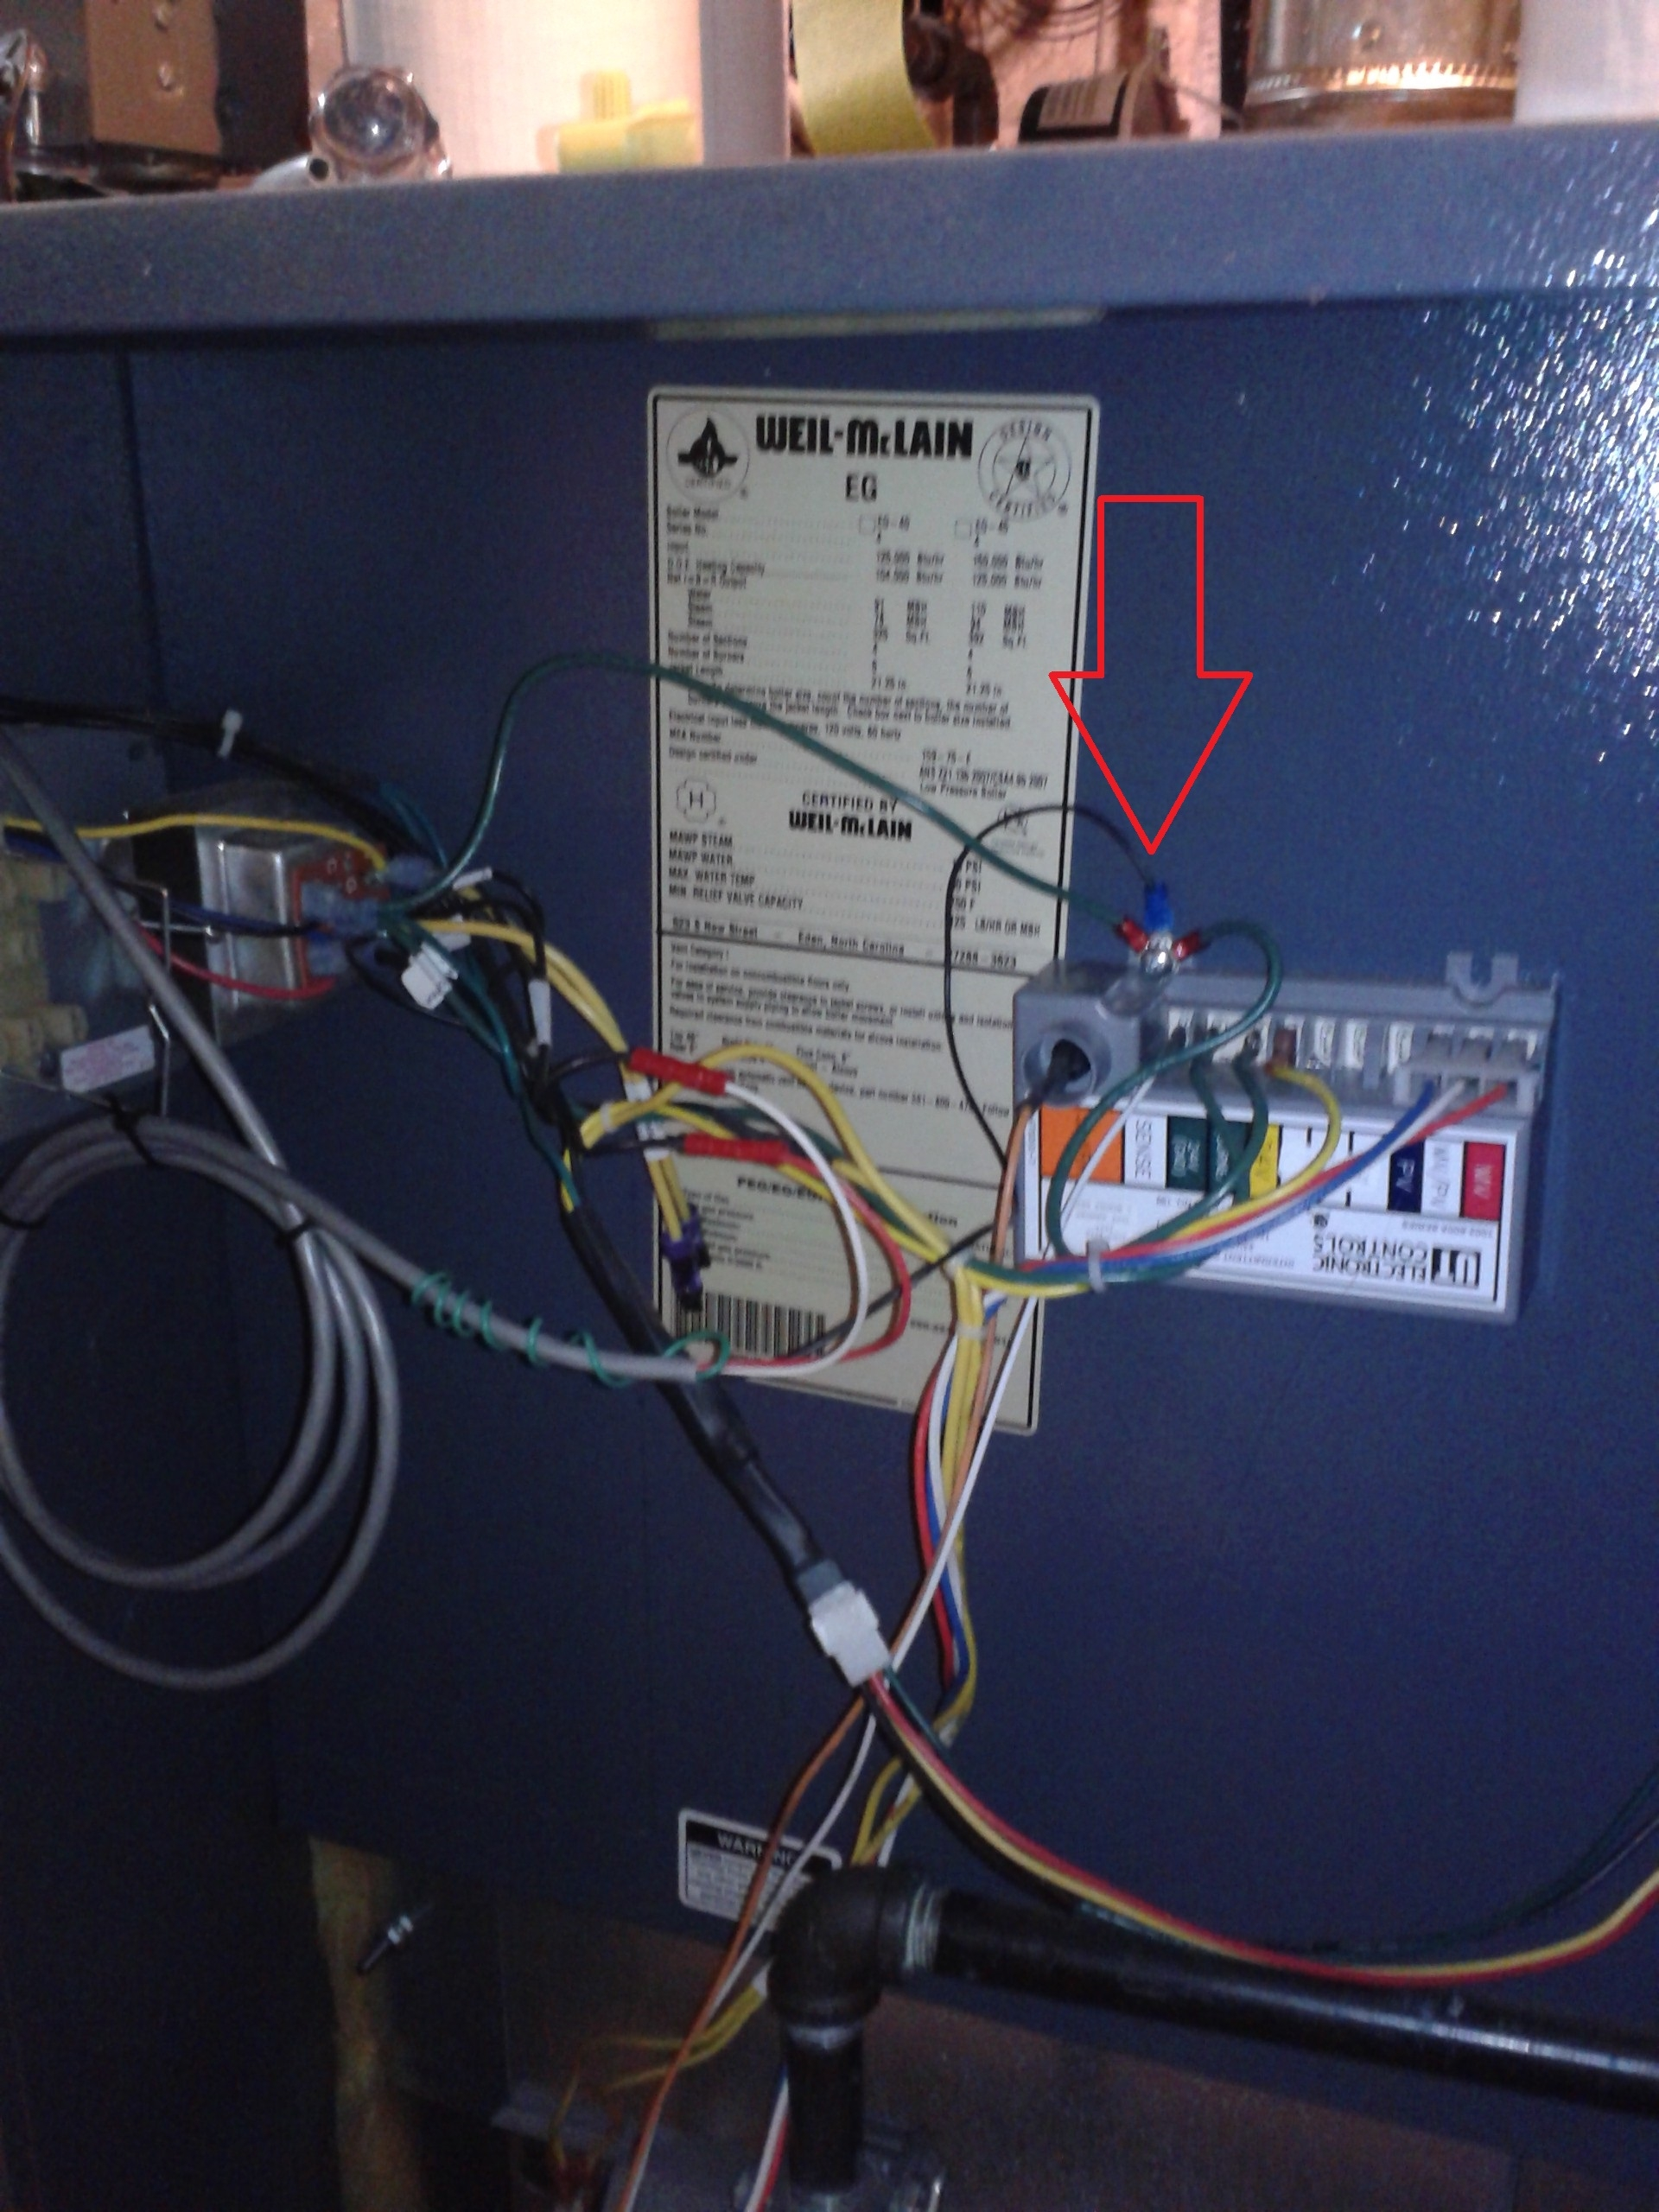 hight resolution of steam boiler to tstat wiring u2014 heating help the wall weil mclain wiring diagram